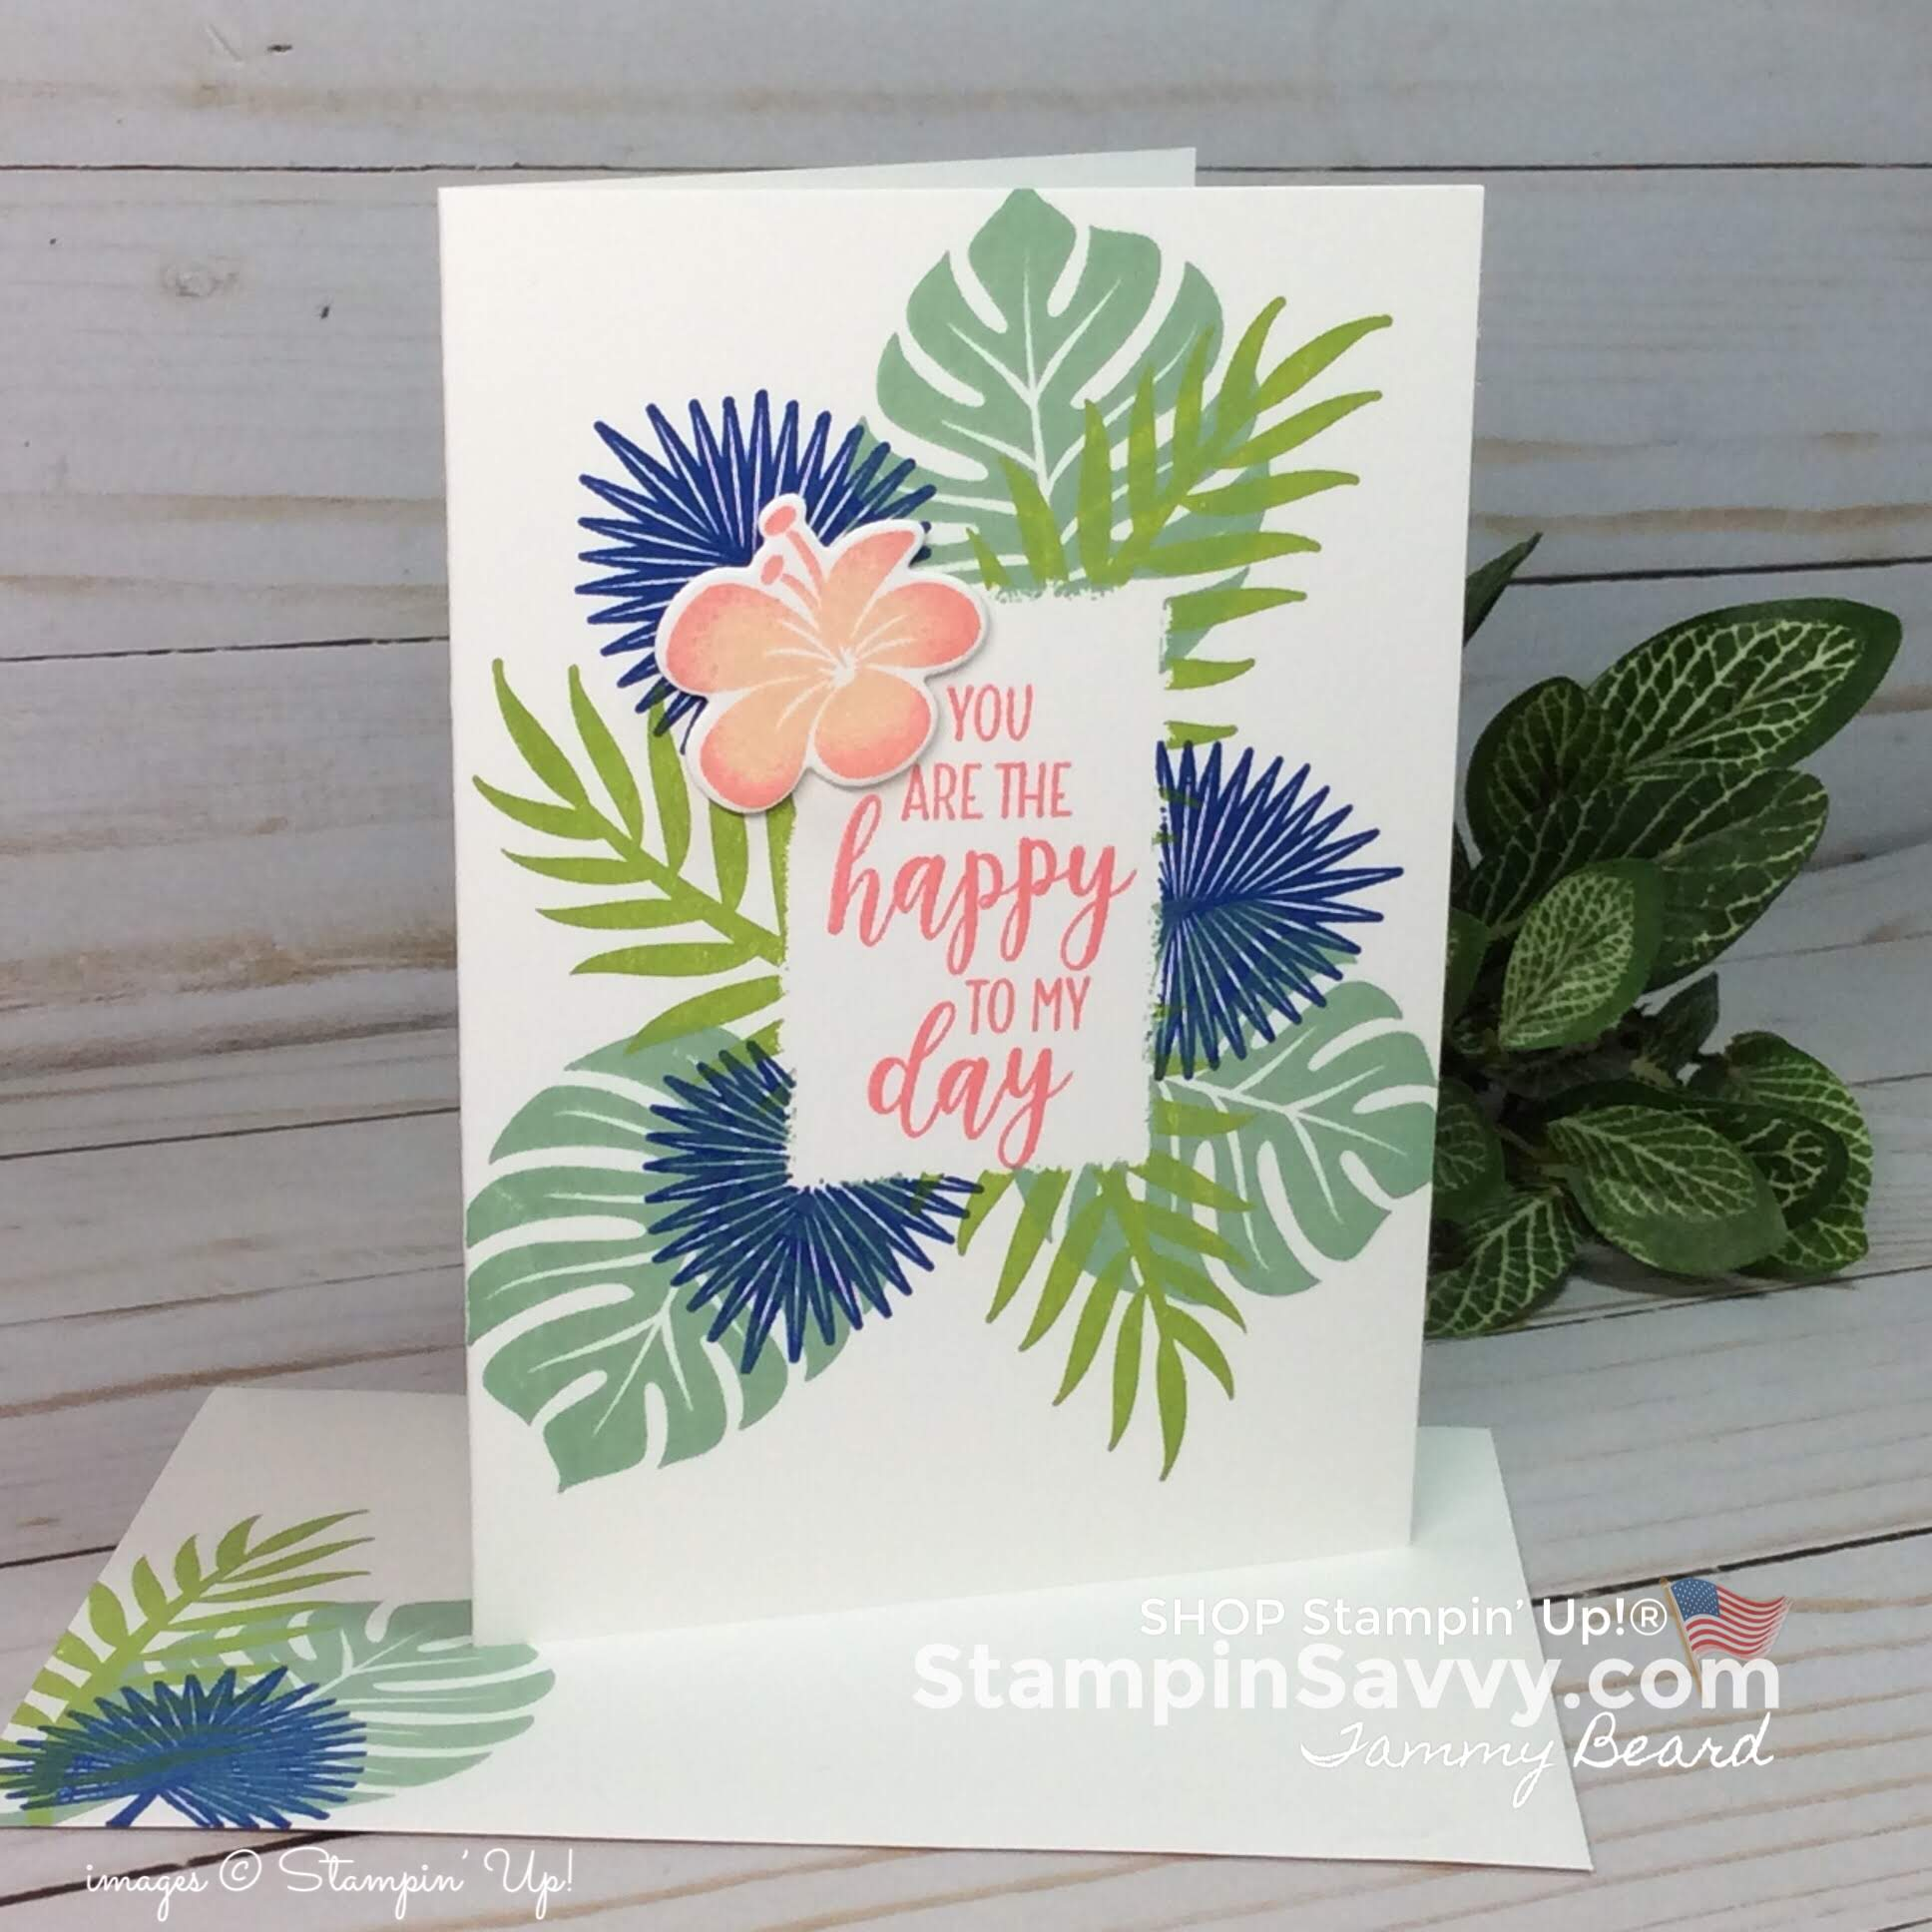 tropical chic stampin up cards, card ideas, masking techniques, mint macaron,stampin up, stampin savvy, stapinup, tammy beard